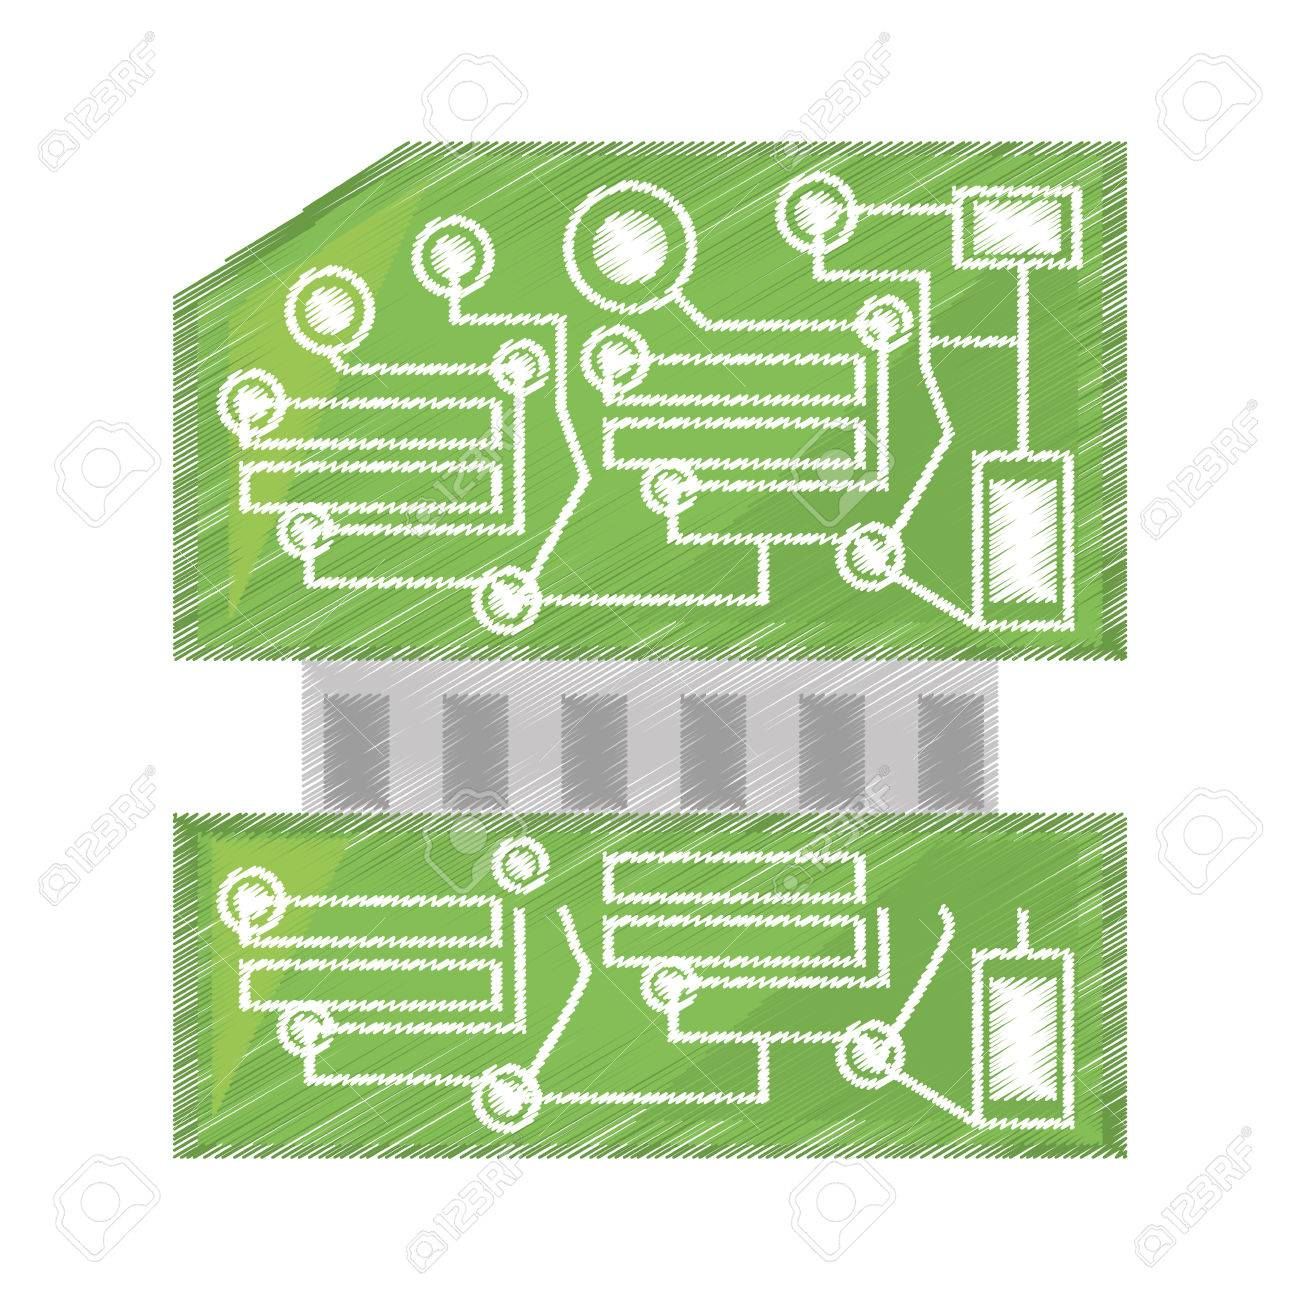 Computer Hardware Drawing At Free For Personal Use Repair Of A Circuit Board Used In Pc Royalty Clip 1300x1300 Processor Card Vector Illustration